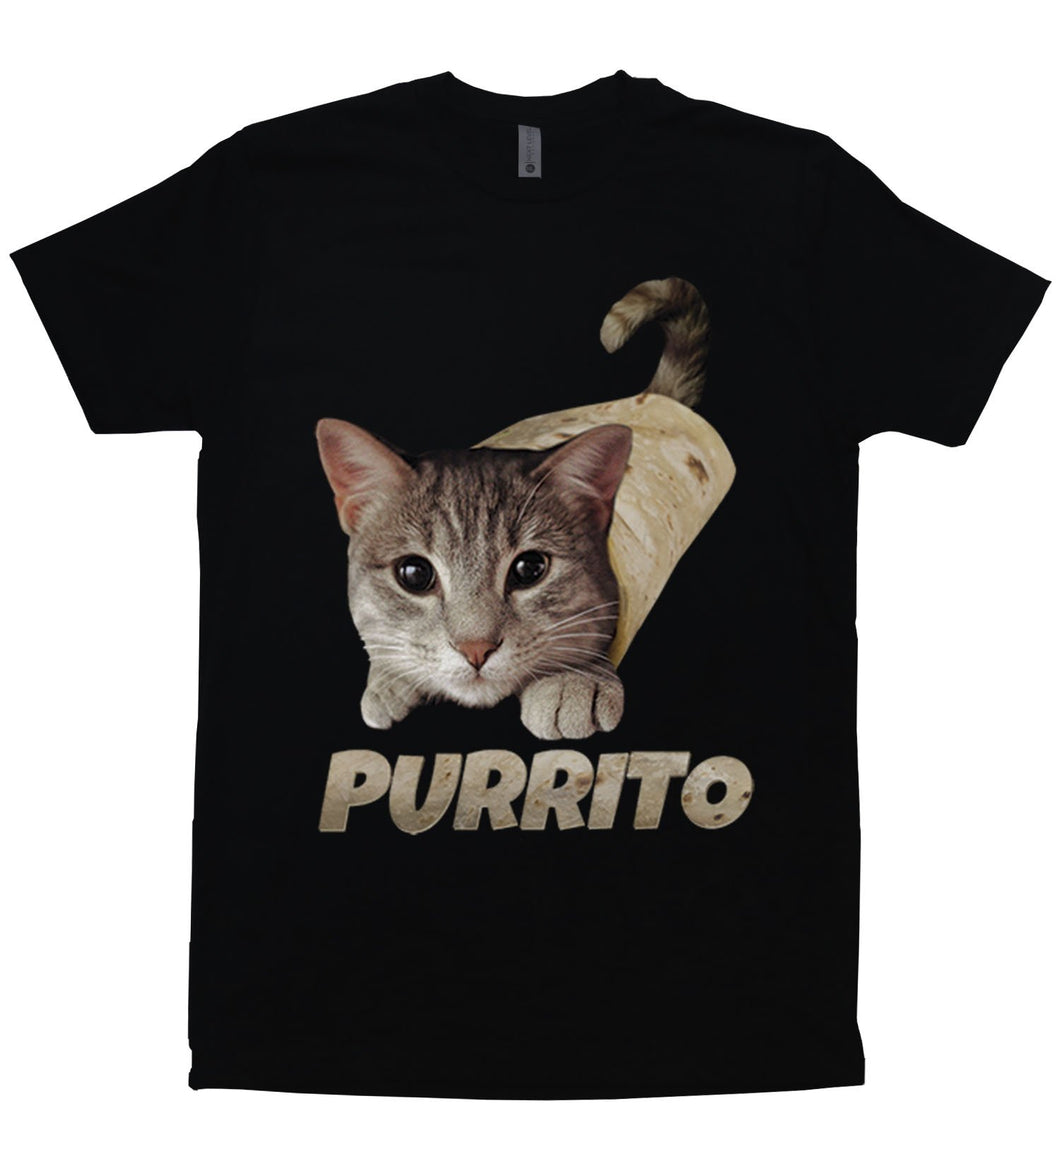 A cat rolled in a burrito with the words